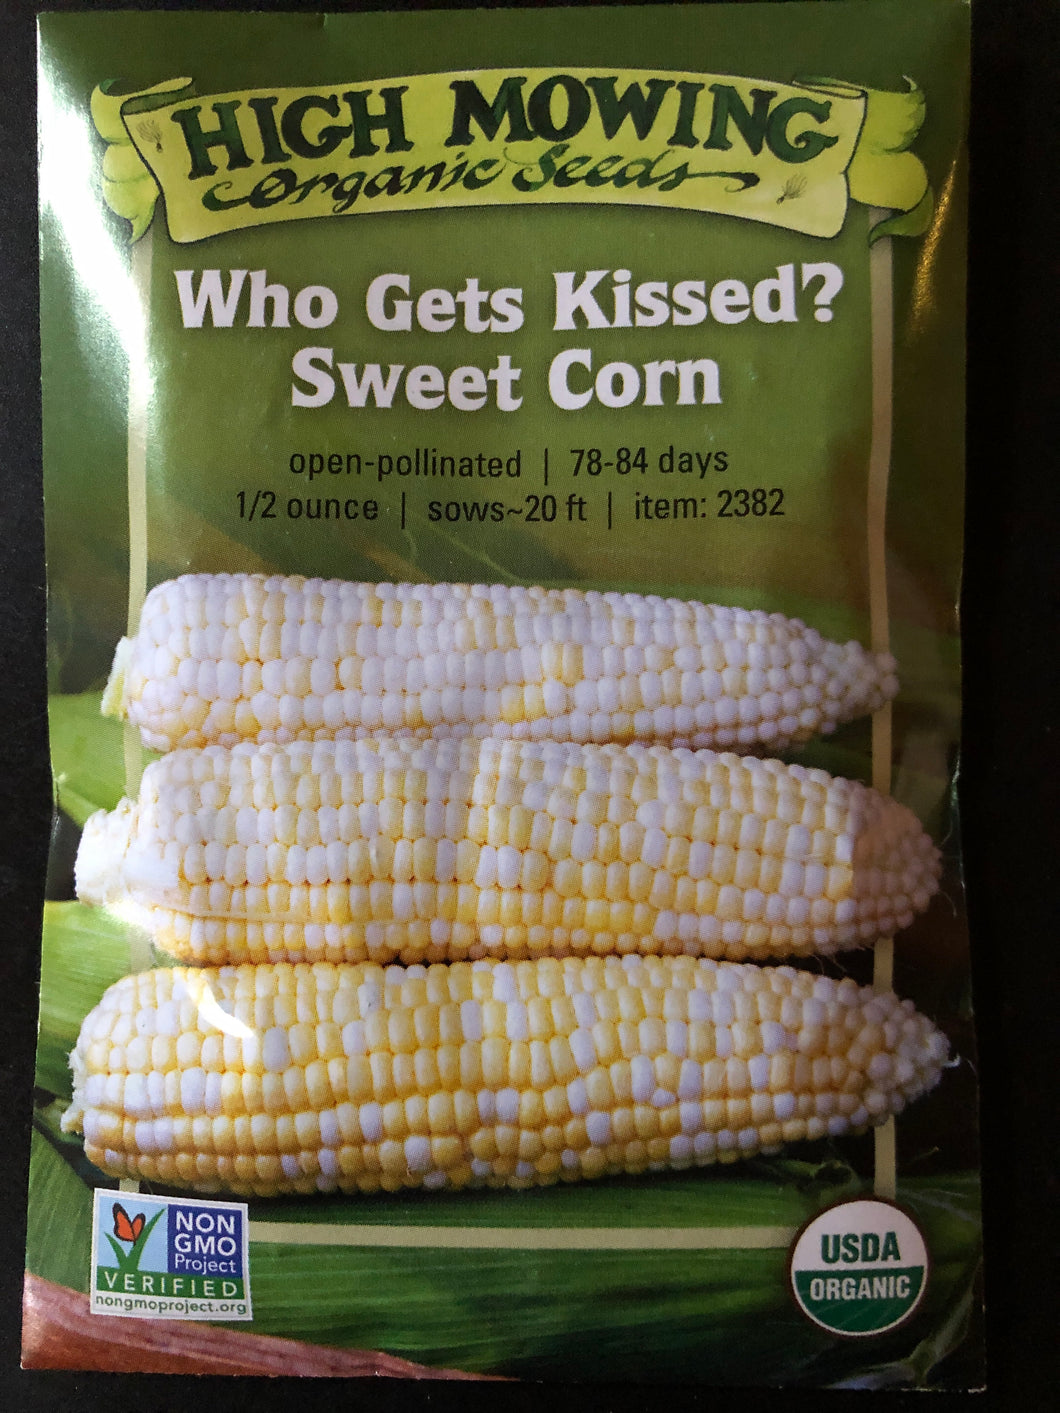 SEEDS: Corn Sweet - Who Gets Kissed - Organic